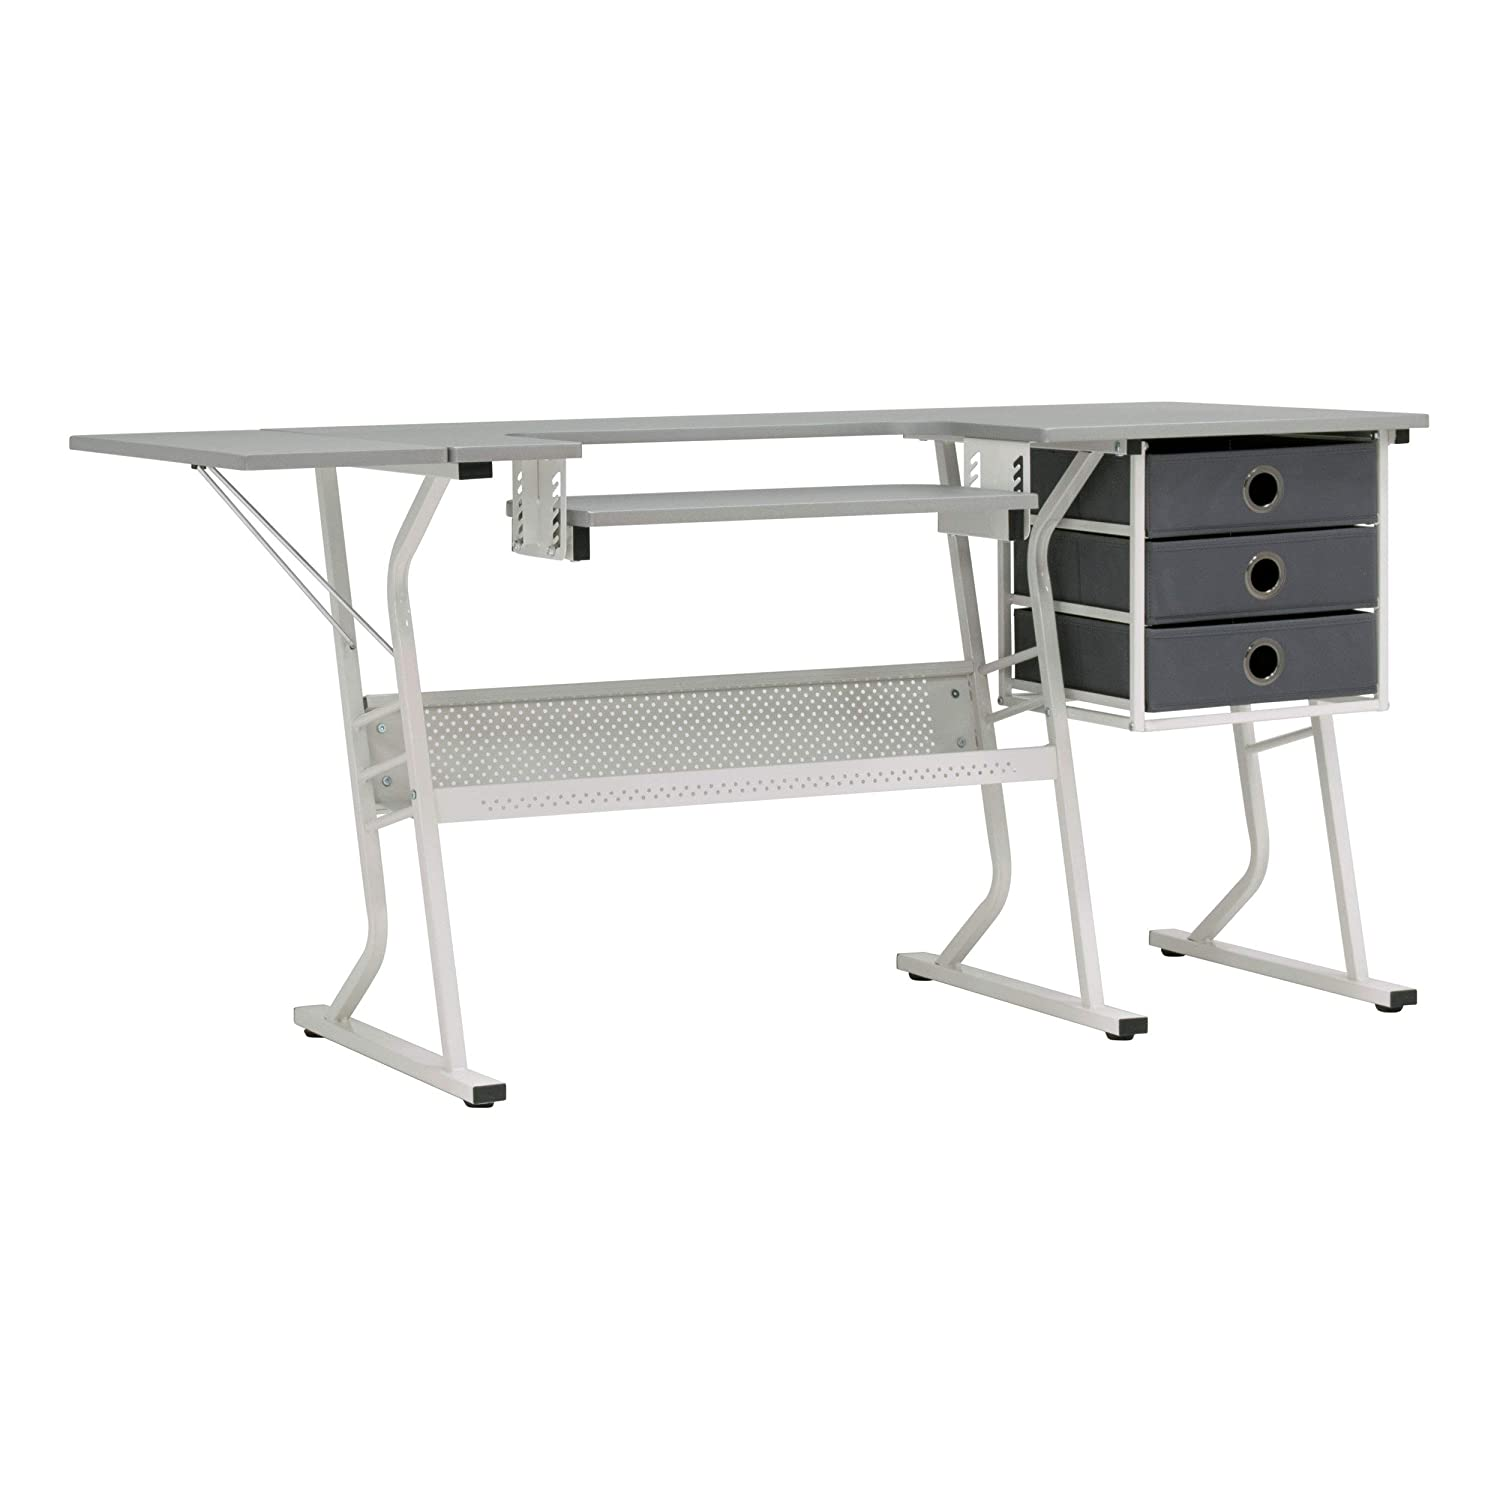 Sew Ready 38010 Eclipse Hobby Center Craft Table Computer Desk with Drawers, 60.25' W x 23.75' D x 29.25' H, White/Grey